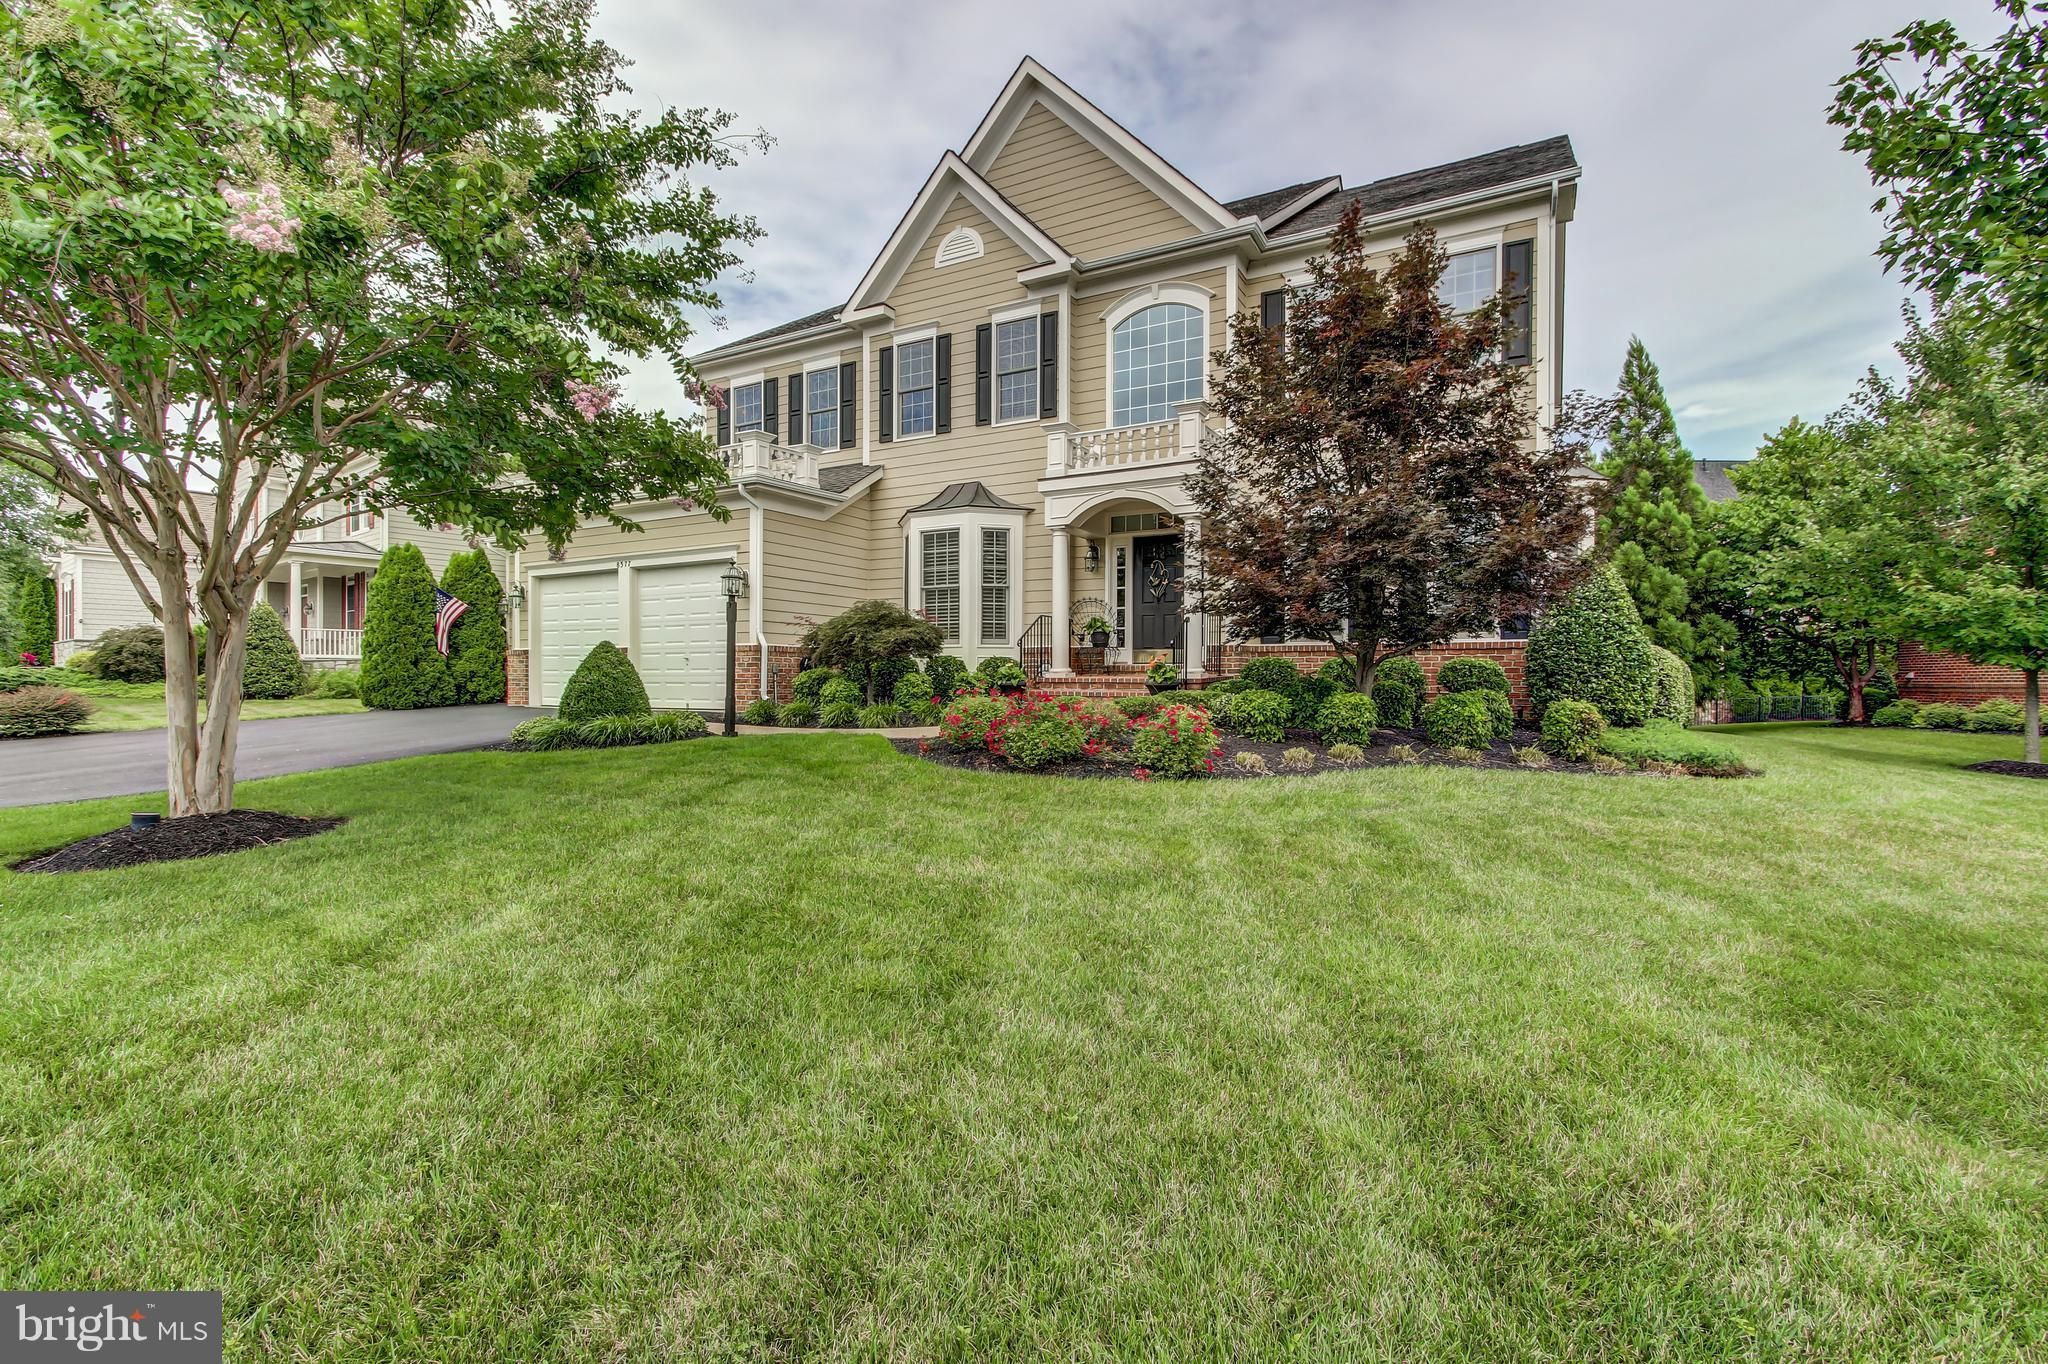 8377 PEDIGRUE COURT, GAINESVILLE, VA 20155